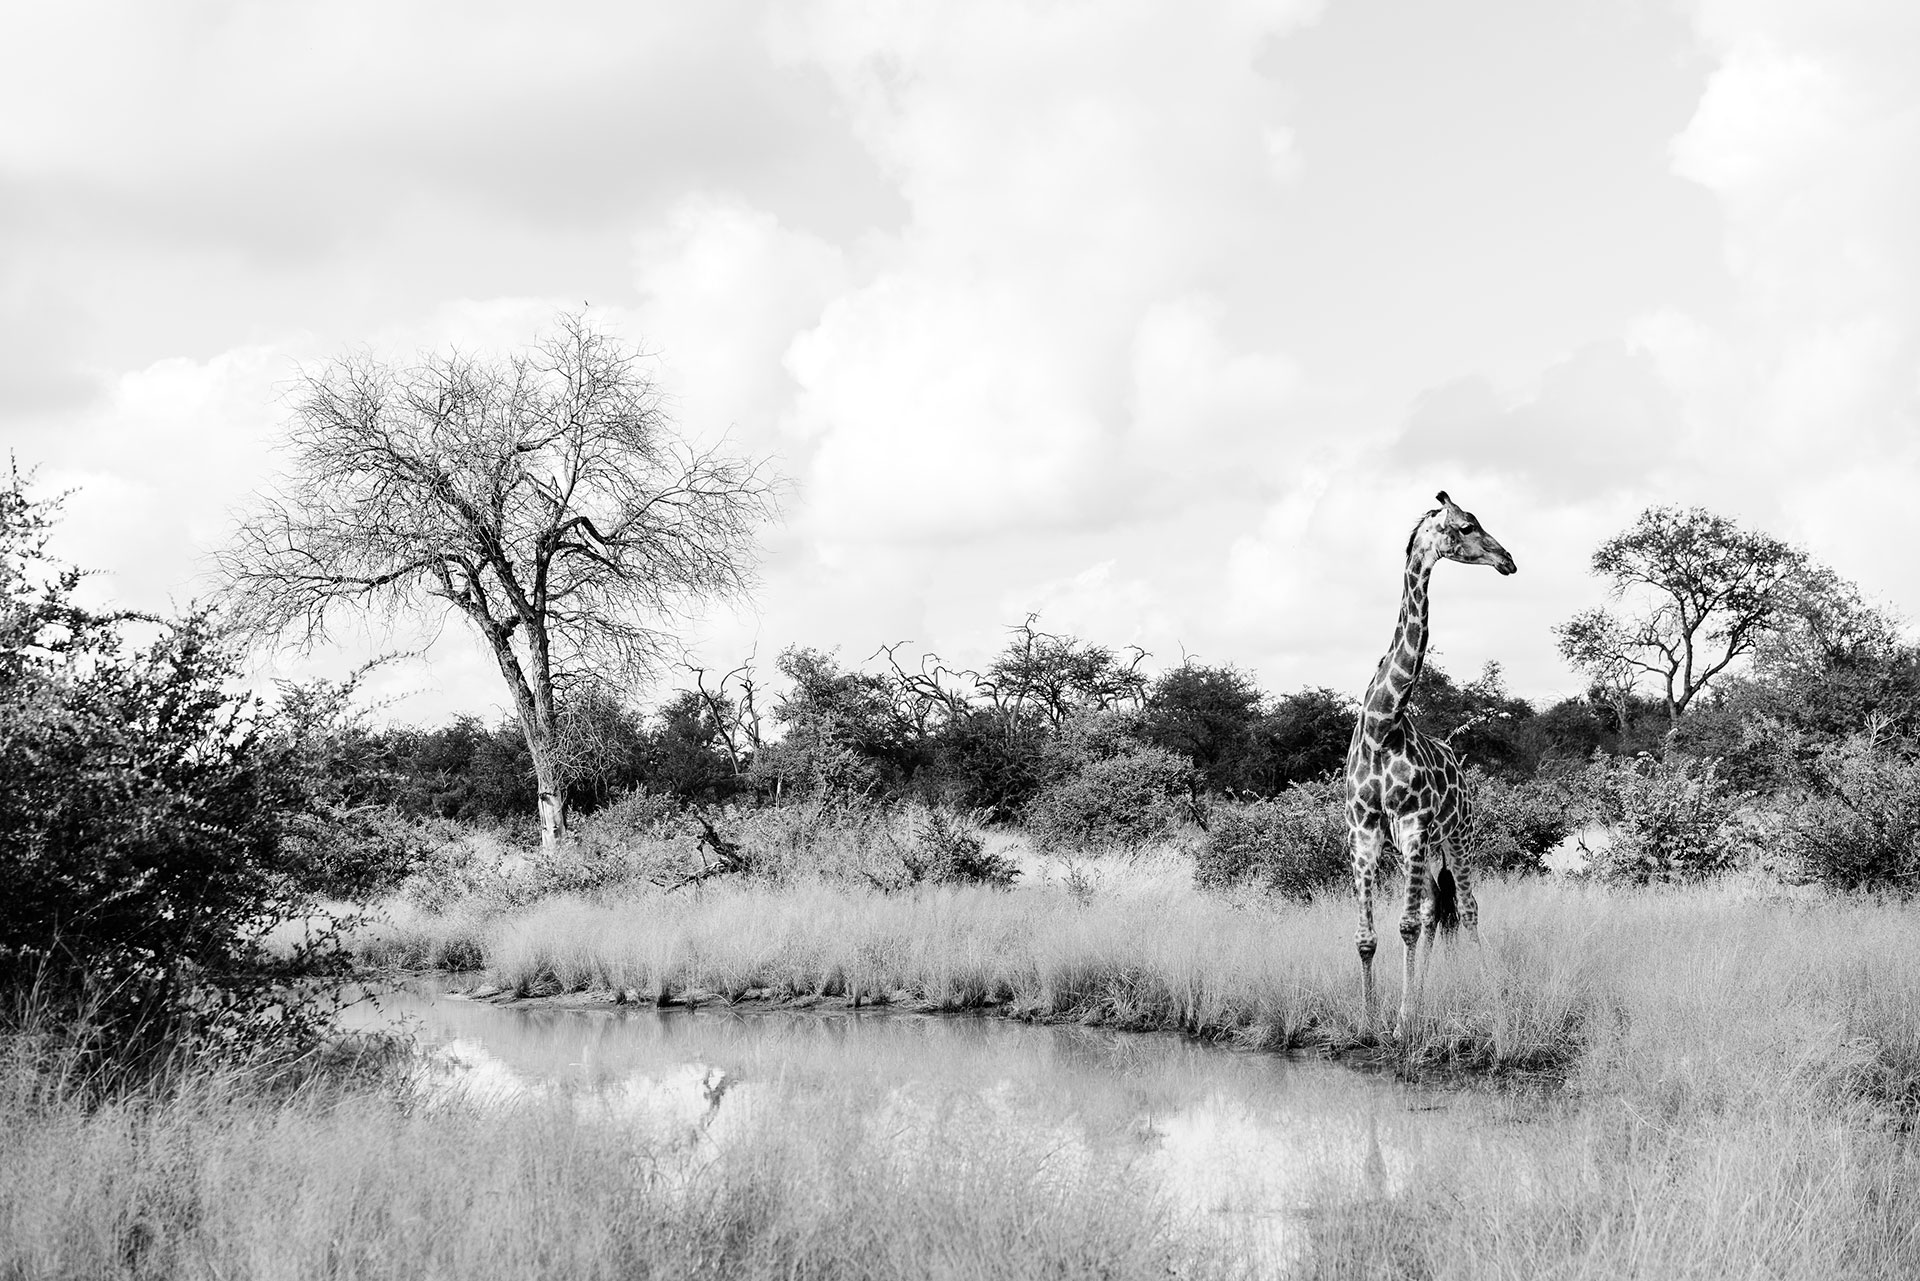 Tanda Tula - giraffe in the Timbavati